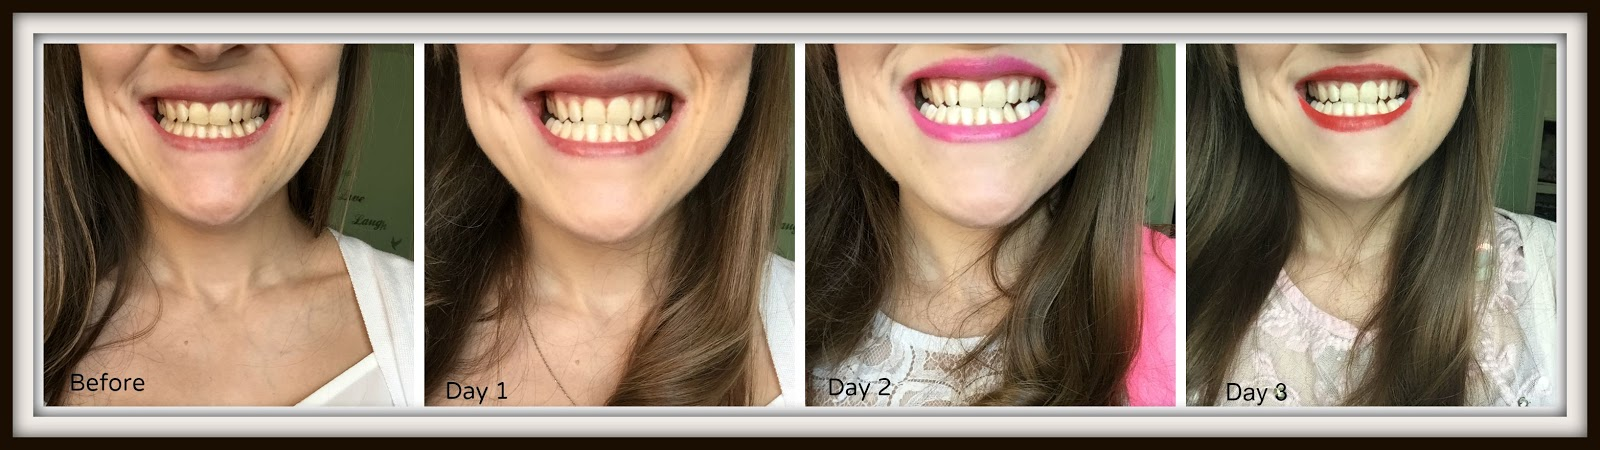 Get Whiter Teeth In 14 Days With Doll White Teeth Whitening Strips